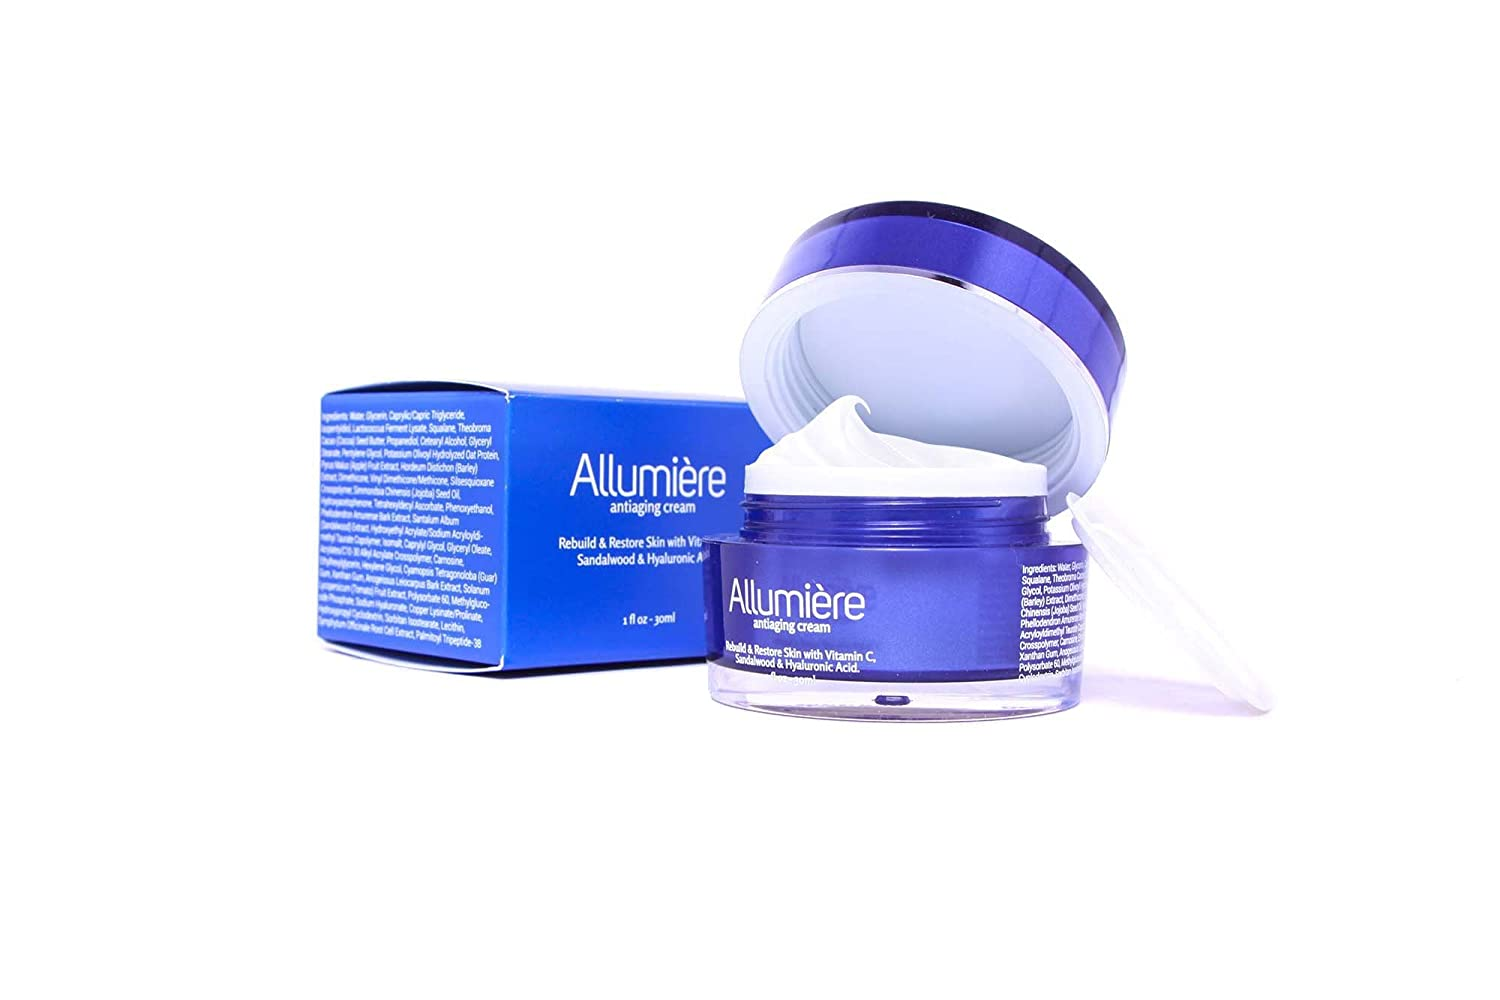 Amazon Allumiere Anti Aging Wrinkle Cream For Fines Lines Wrinkles Improves Skin Radiance Texture And Tone With Cocoa Seed Butter